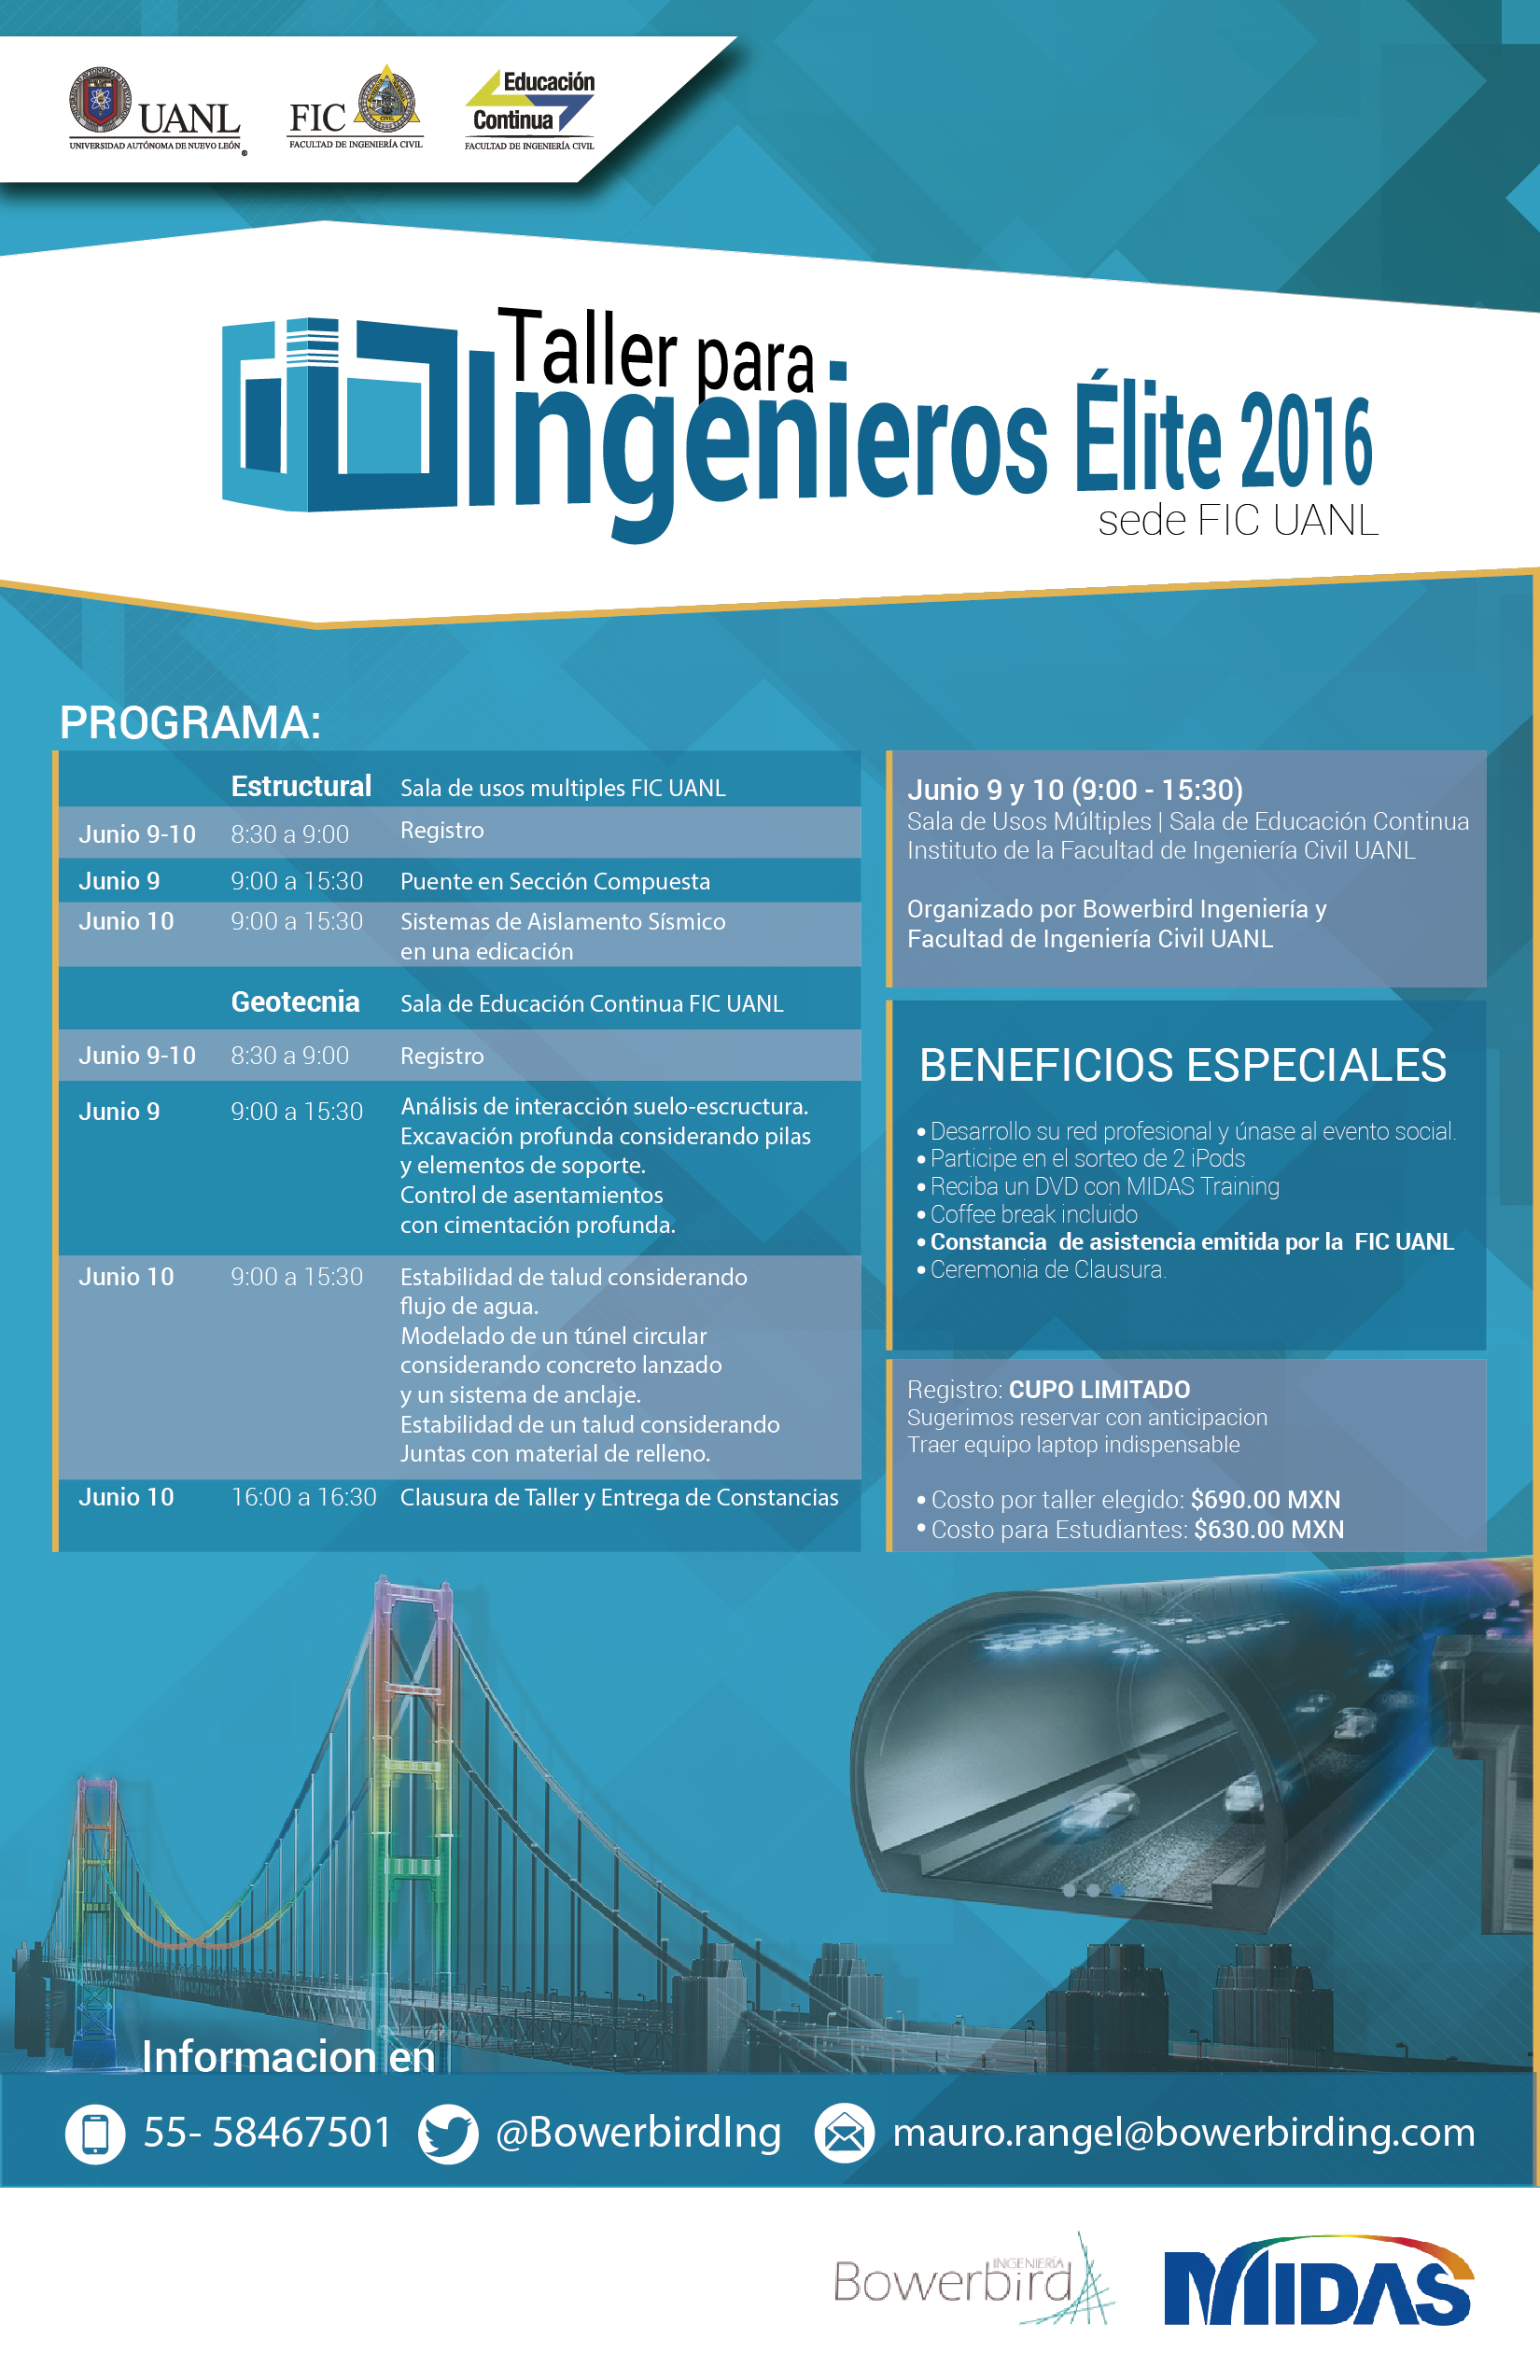 Taller par aInges Elite 4-02